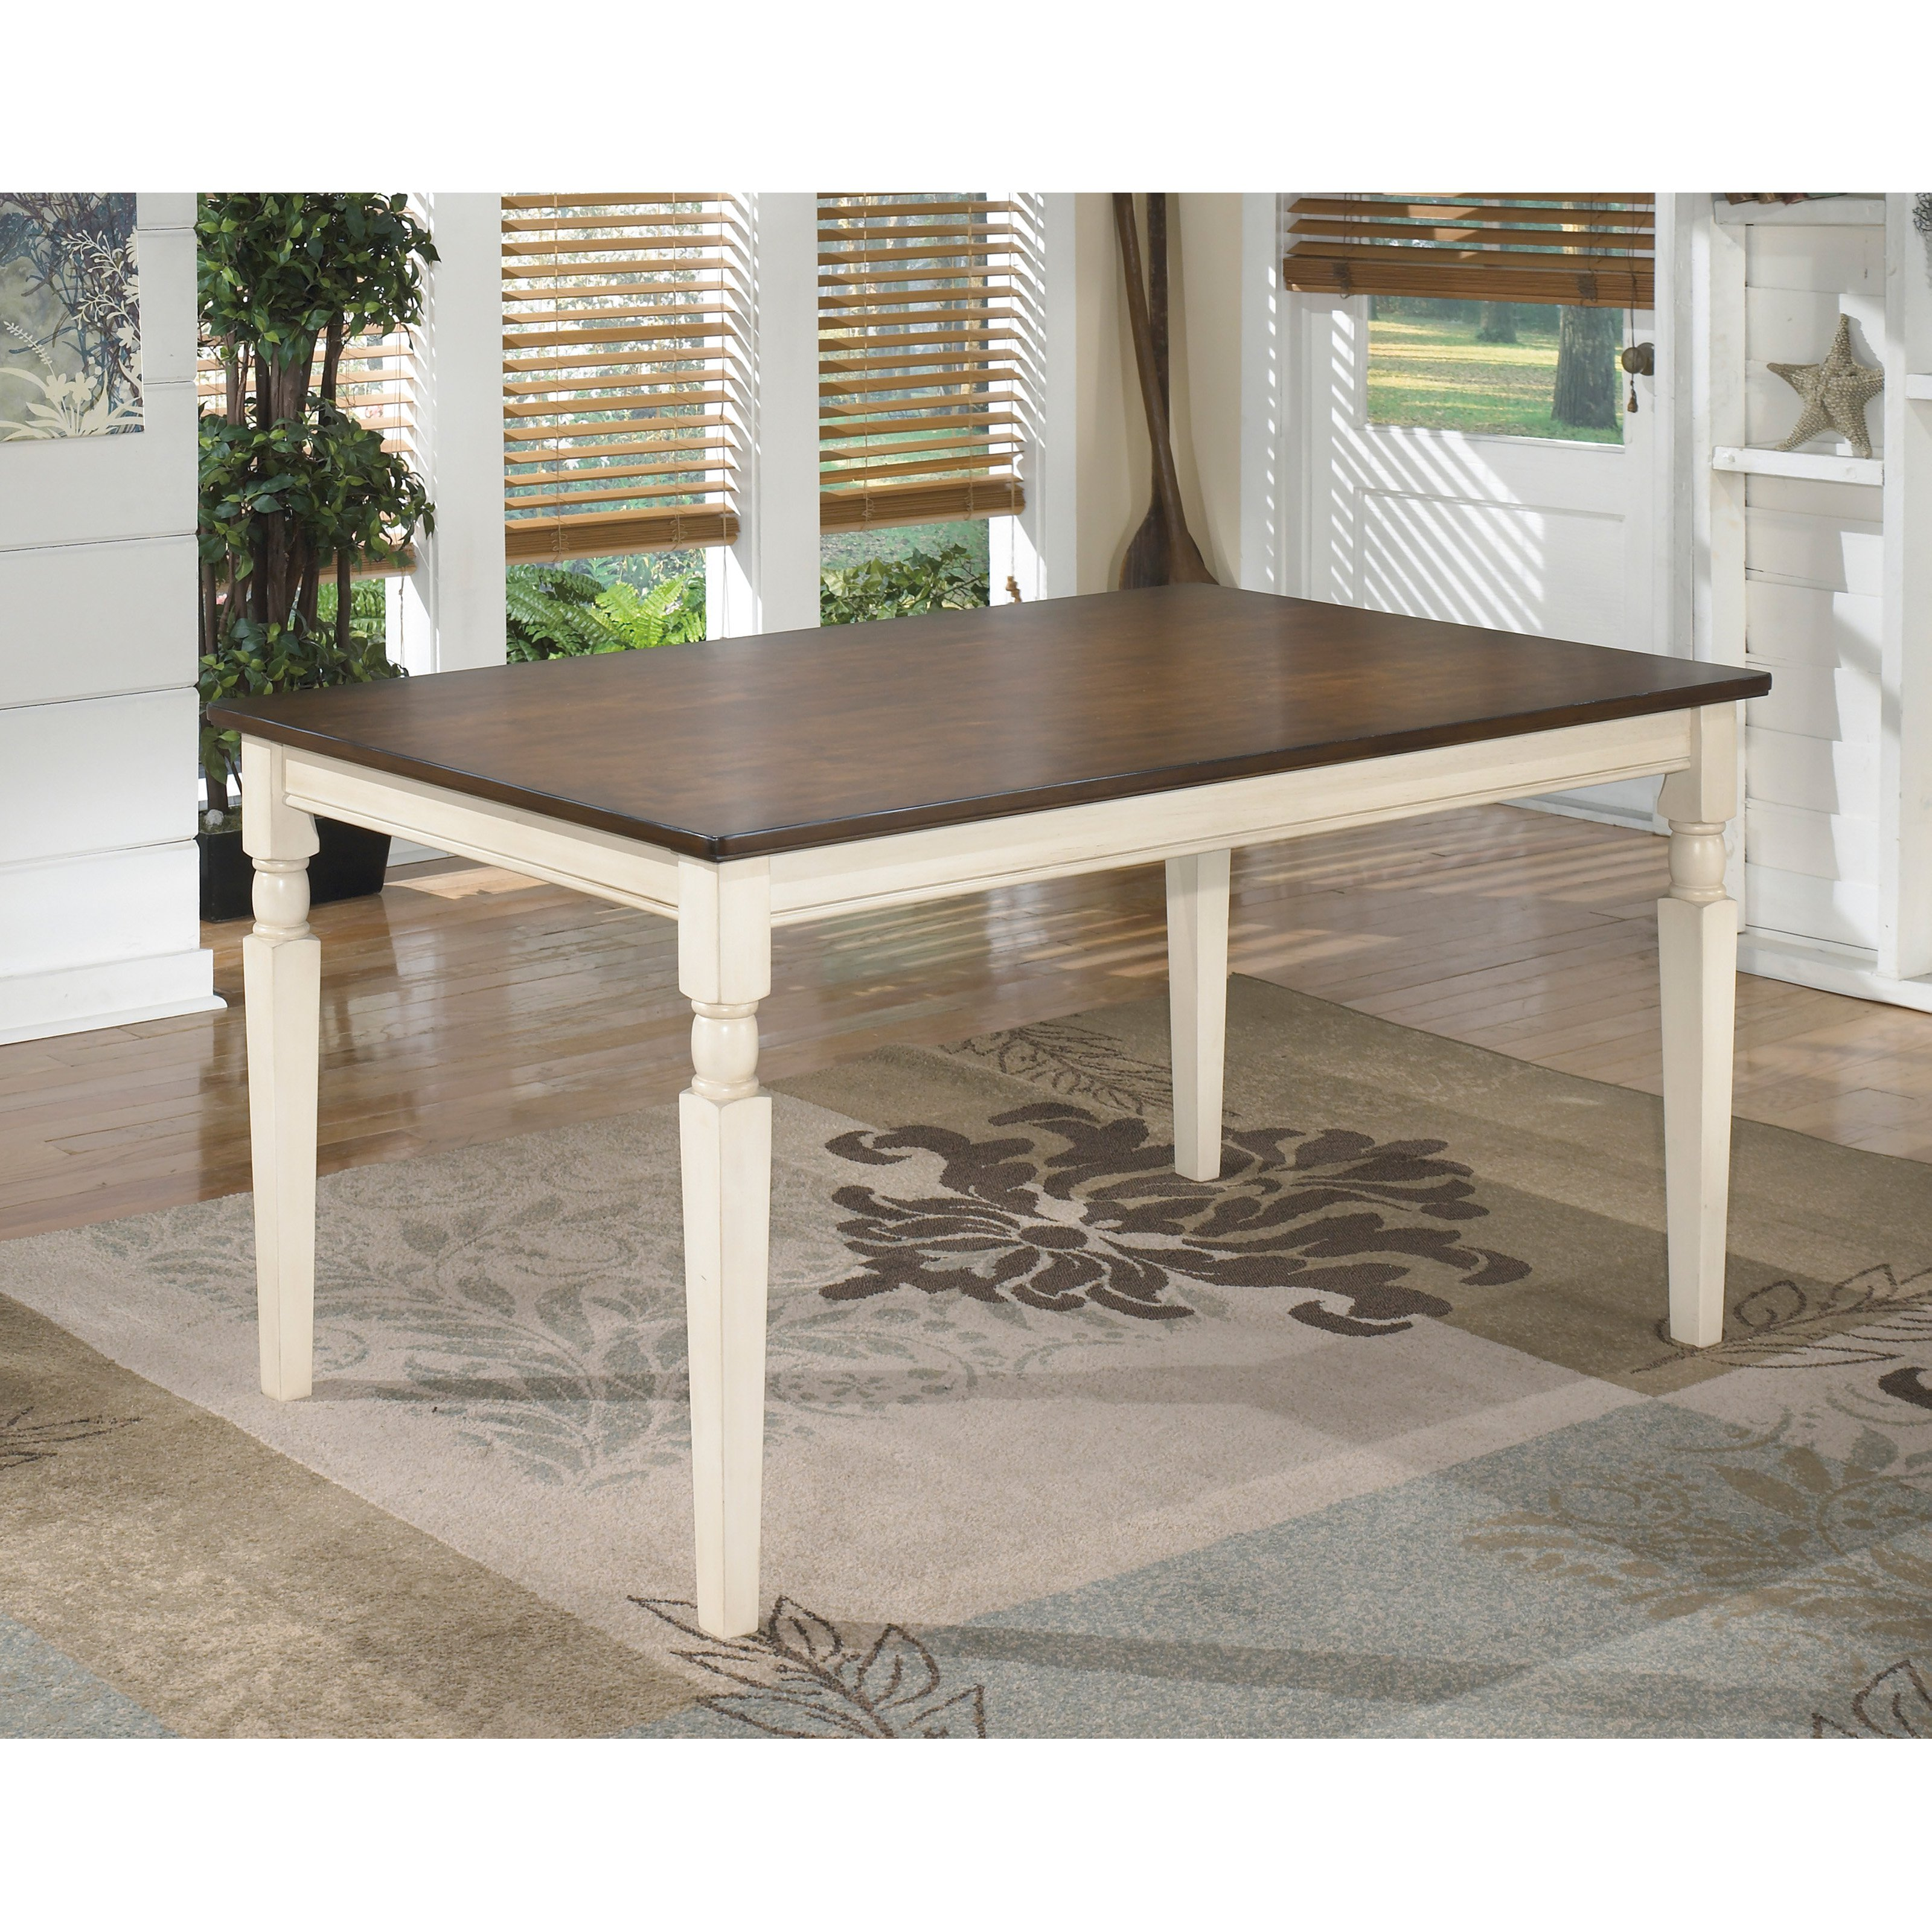 White And Brown Dining Table: Mainstays 5-Piece Glass Top Metal Dining Set